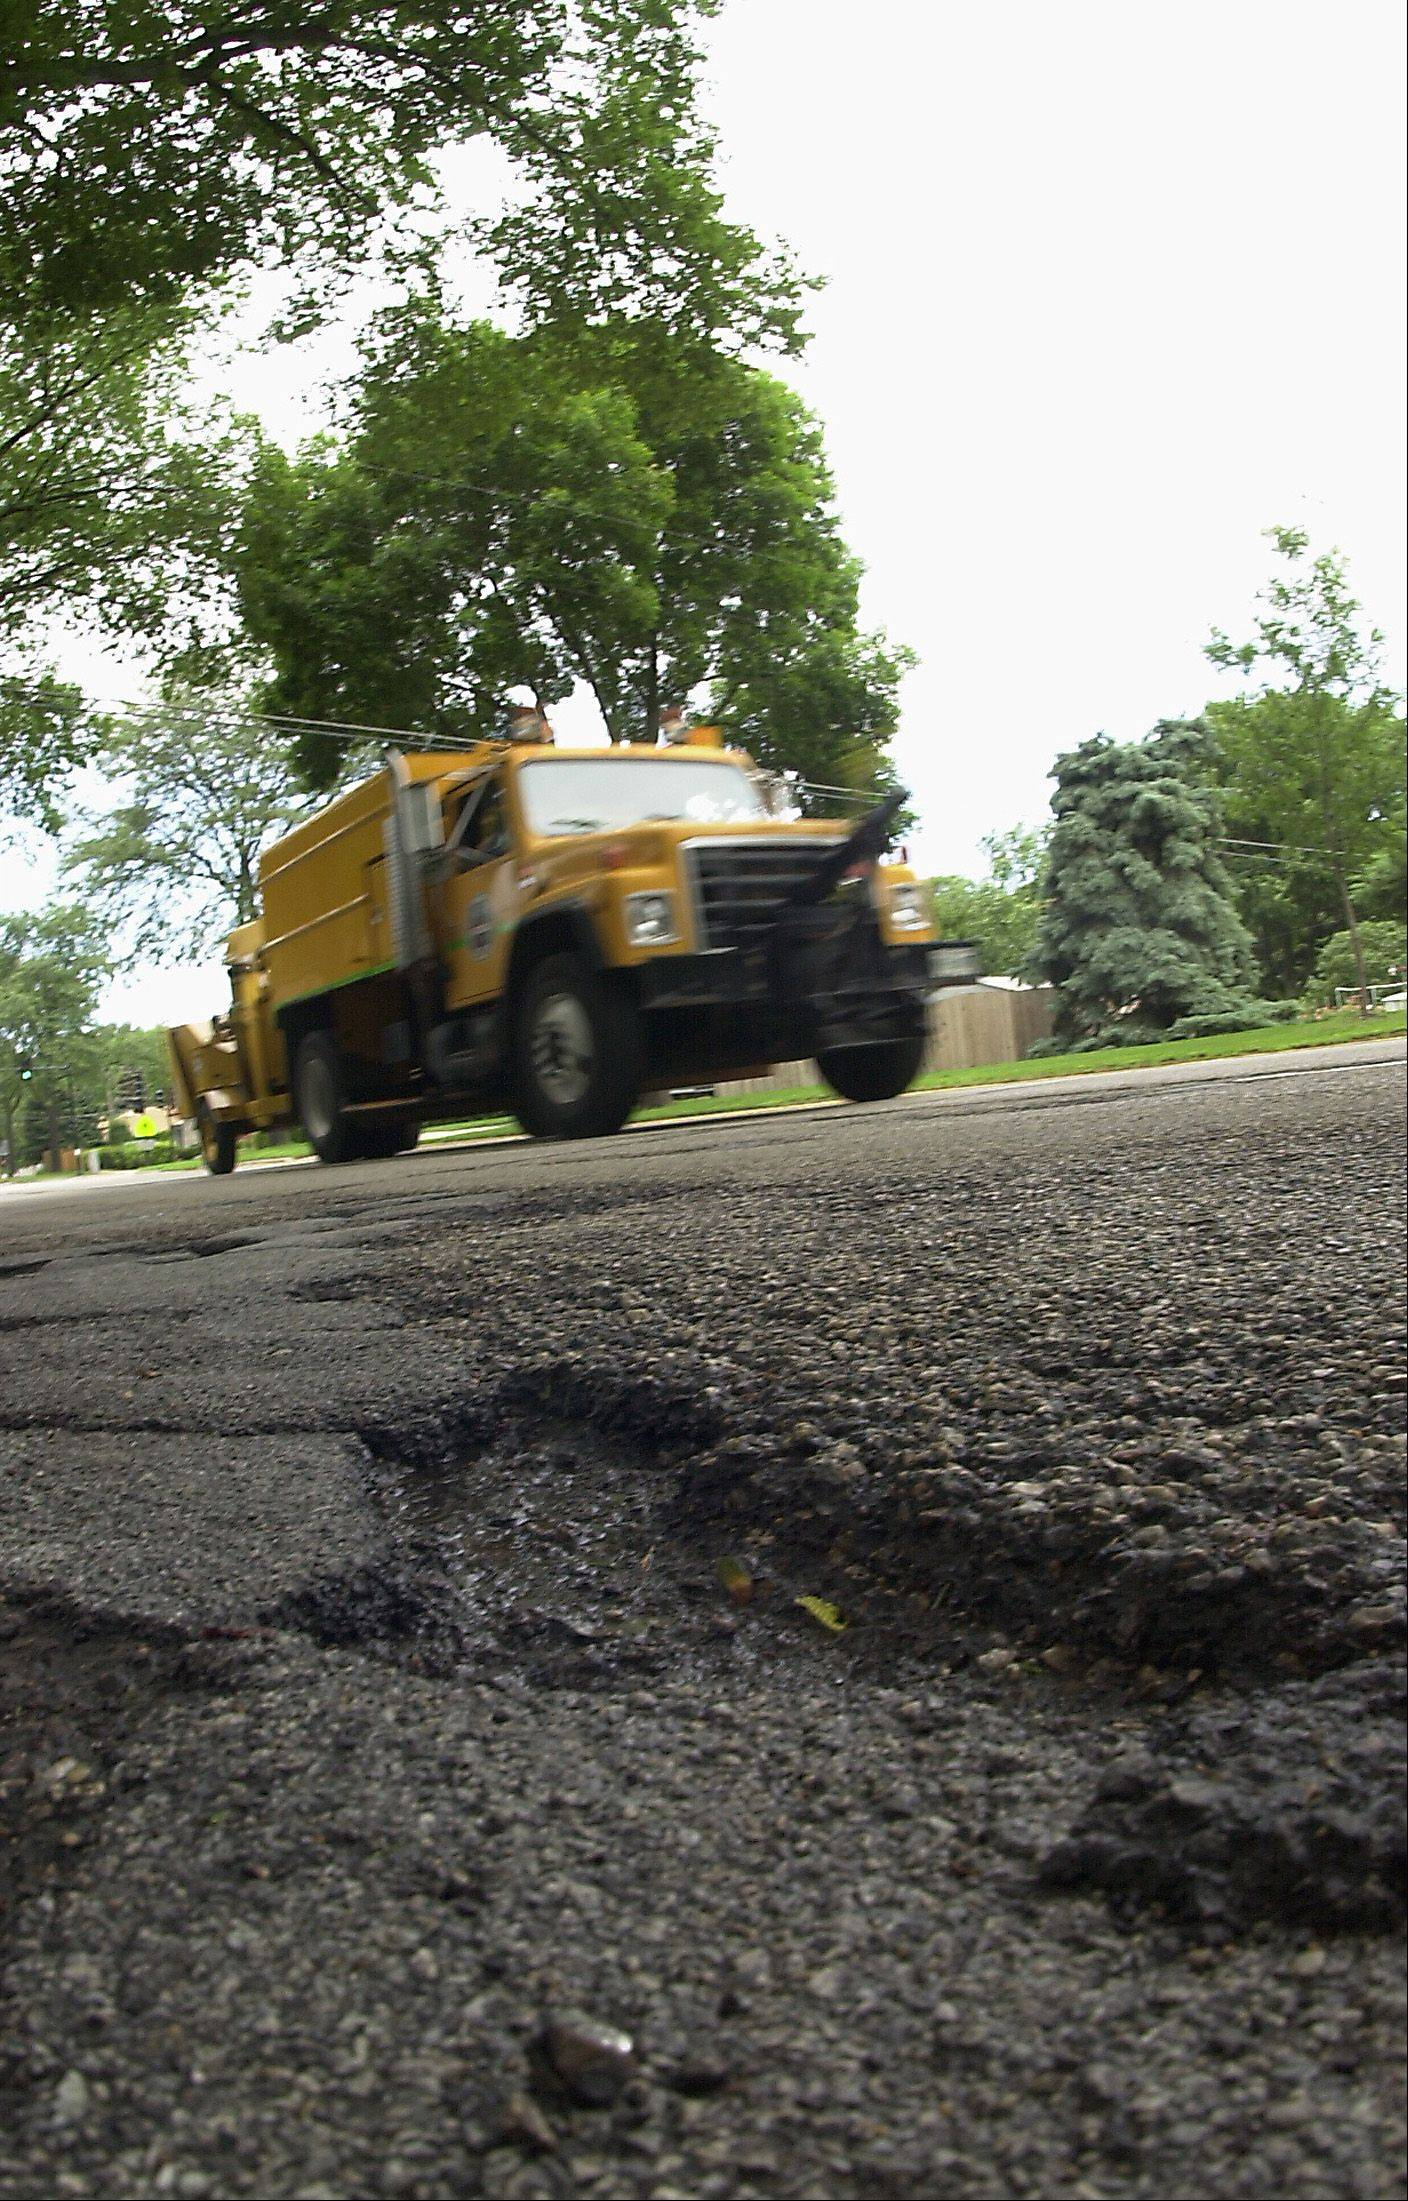 Mount Prospect leaders are discussing a $6.5 million bond issue as well as fee and tax hikes to address a lengthy backlog on street repairs. The hikes are expected to provide the village with an additional $2.1 million a year for street maintenance.